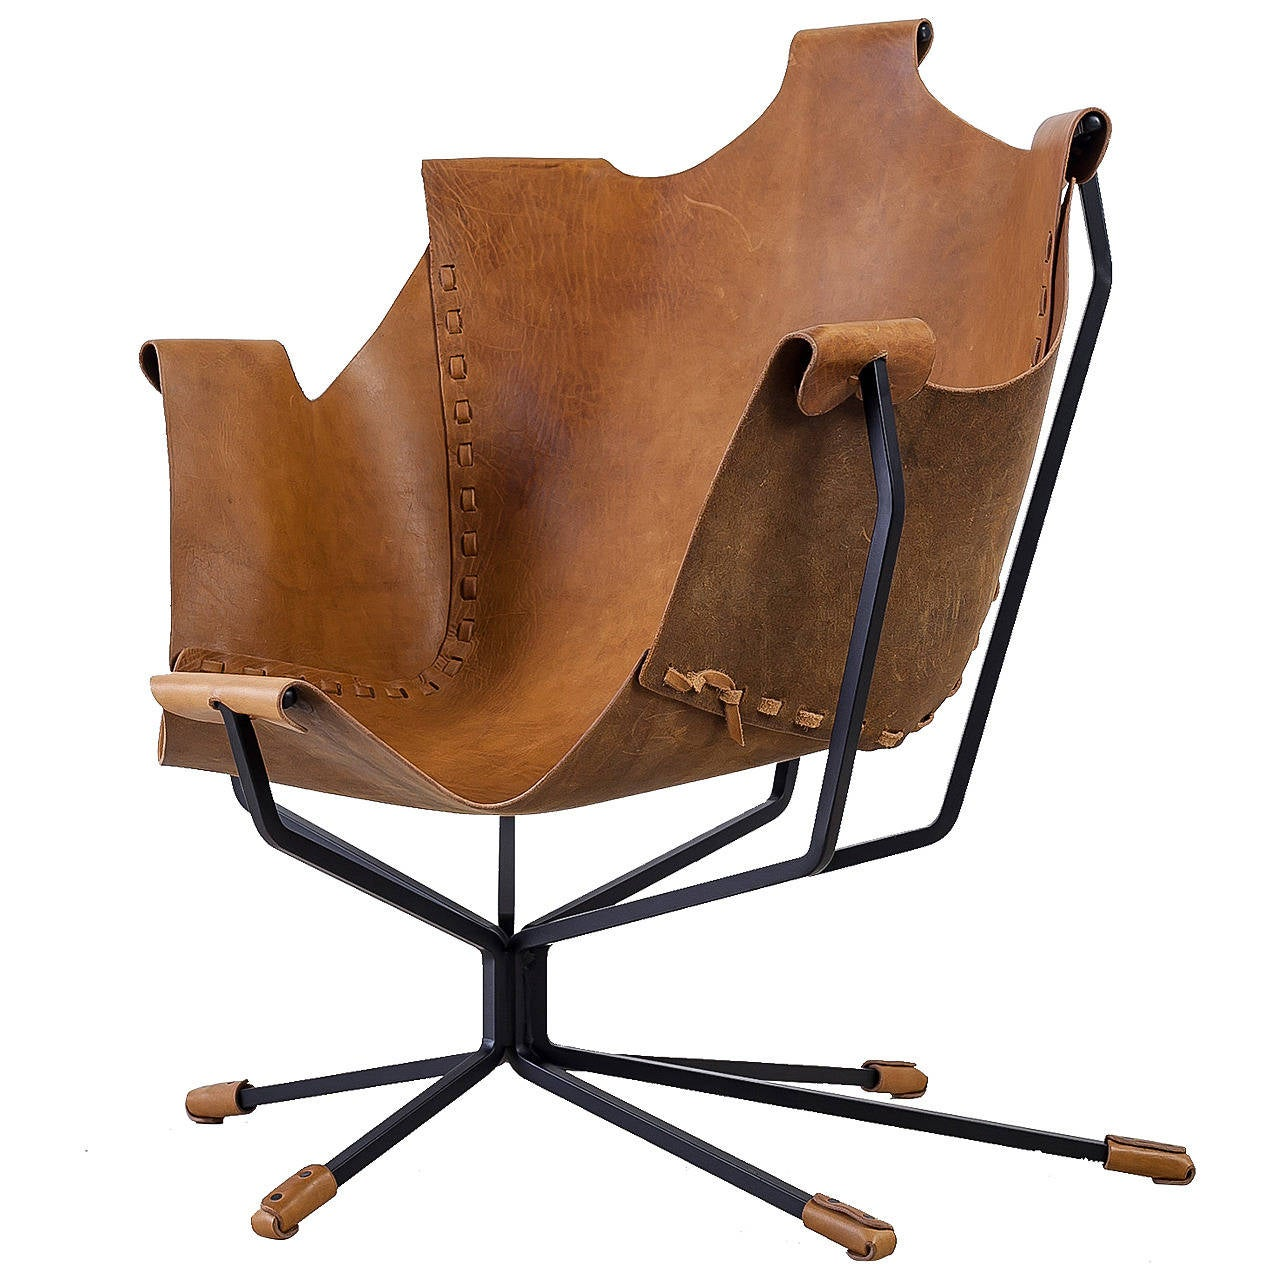 Special Edition Dan Wenger Sling Chair, USA, 1970s For Sale